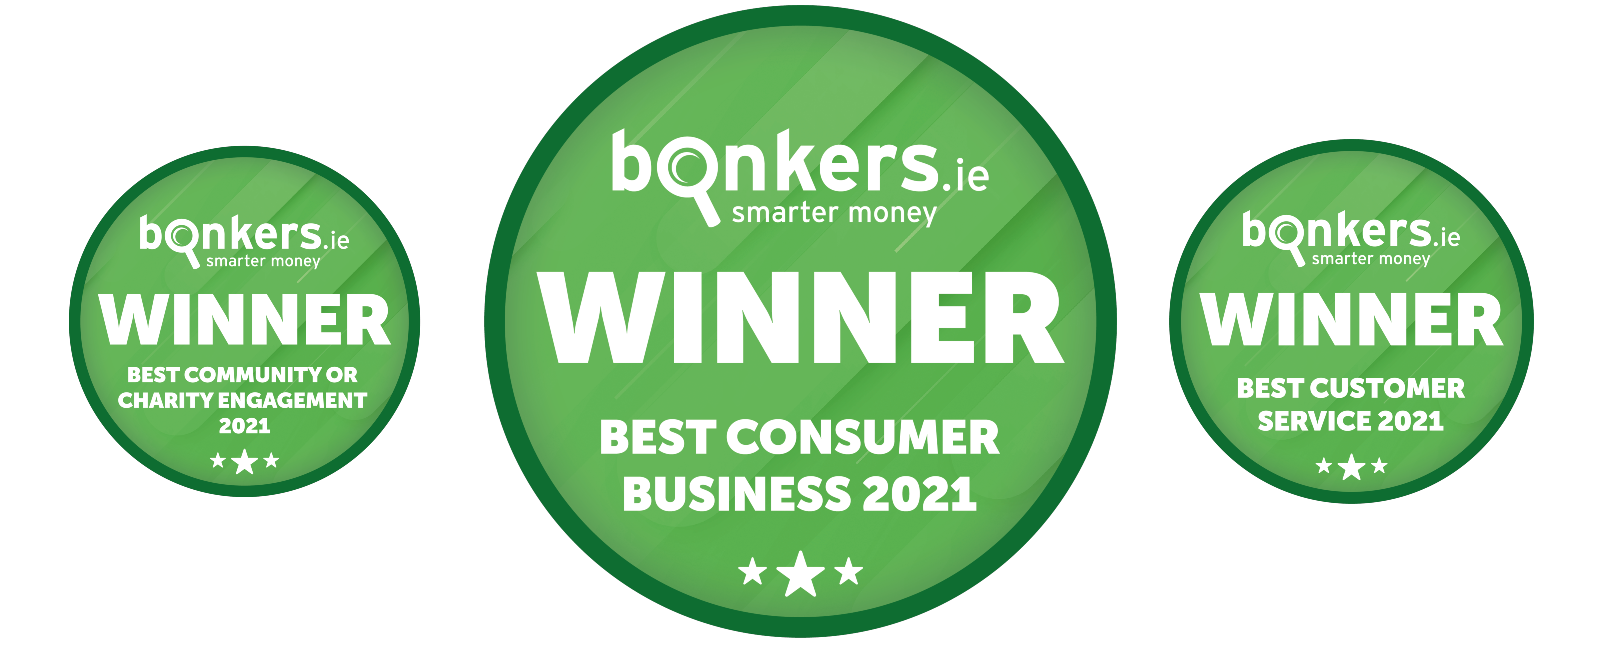 Electric Ireland have won best overall consumer business 2021